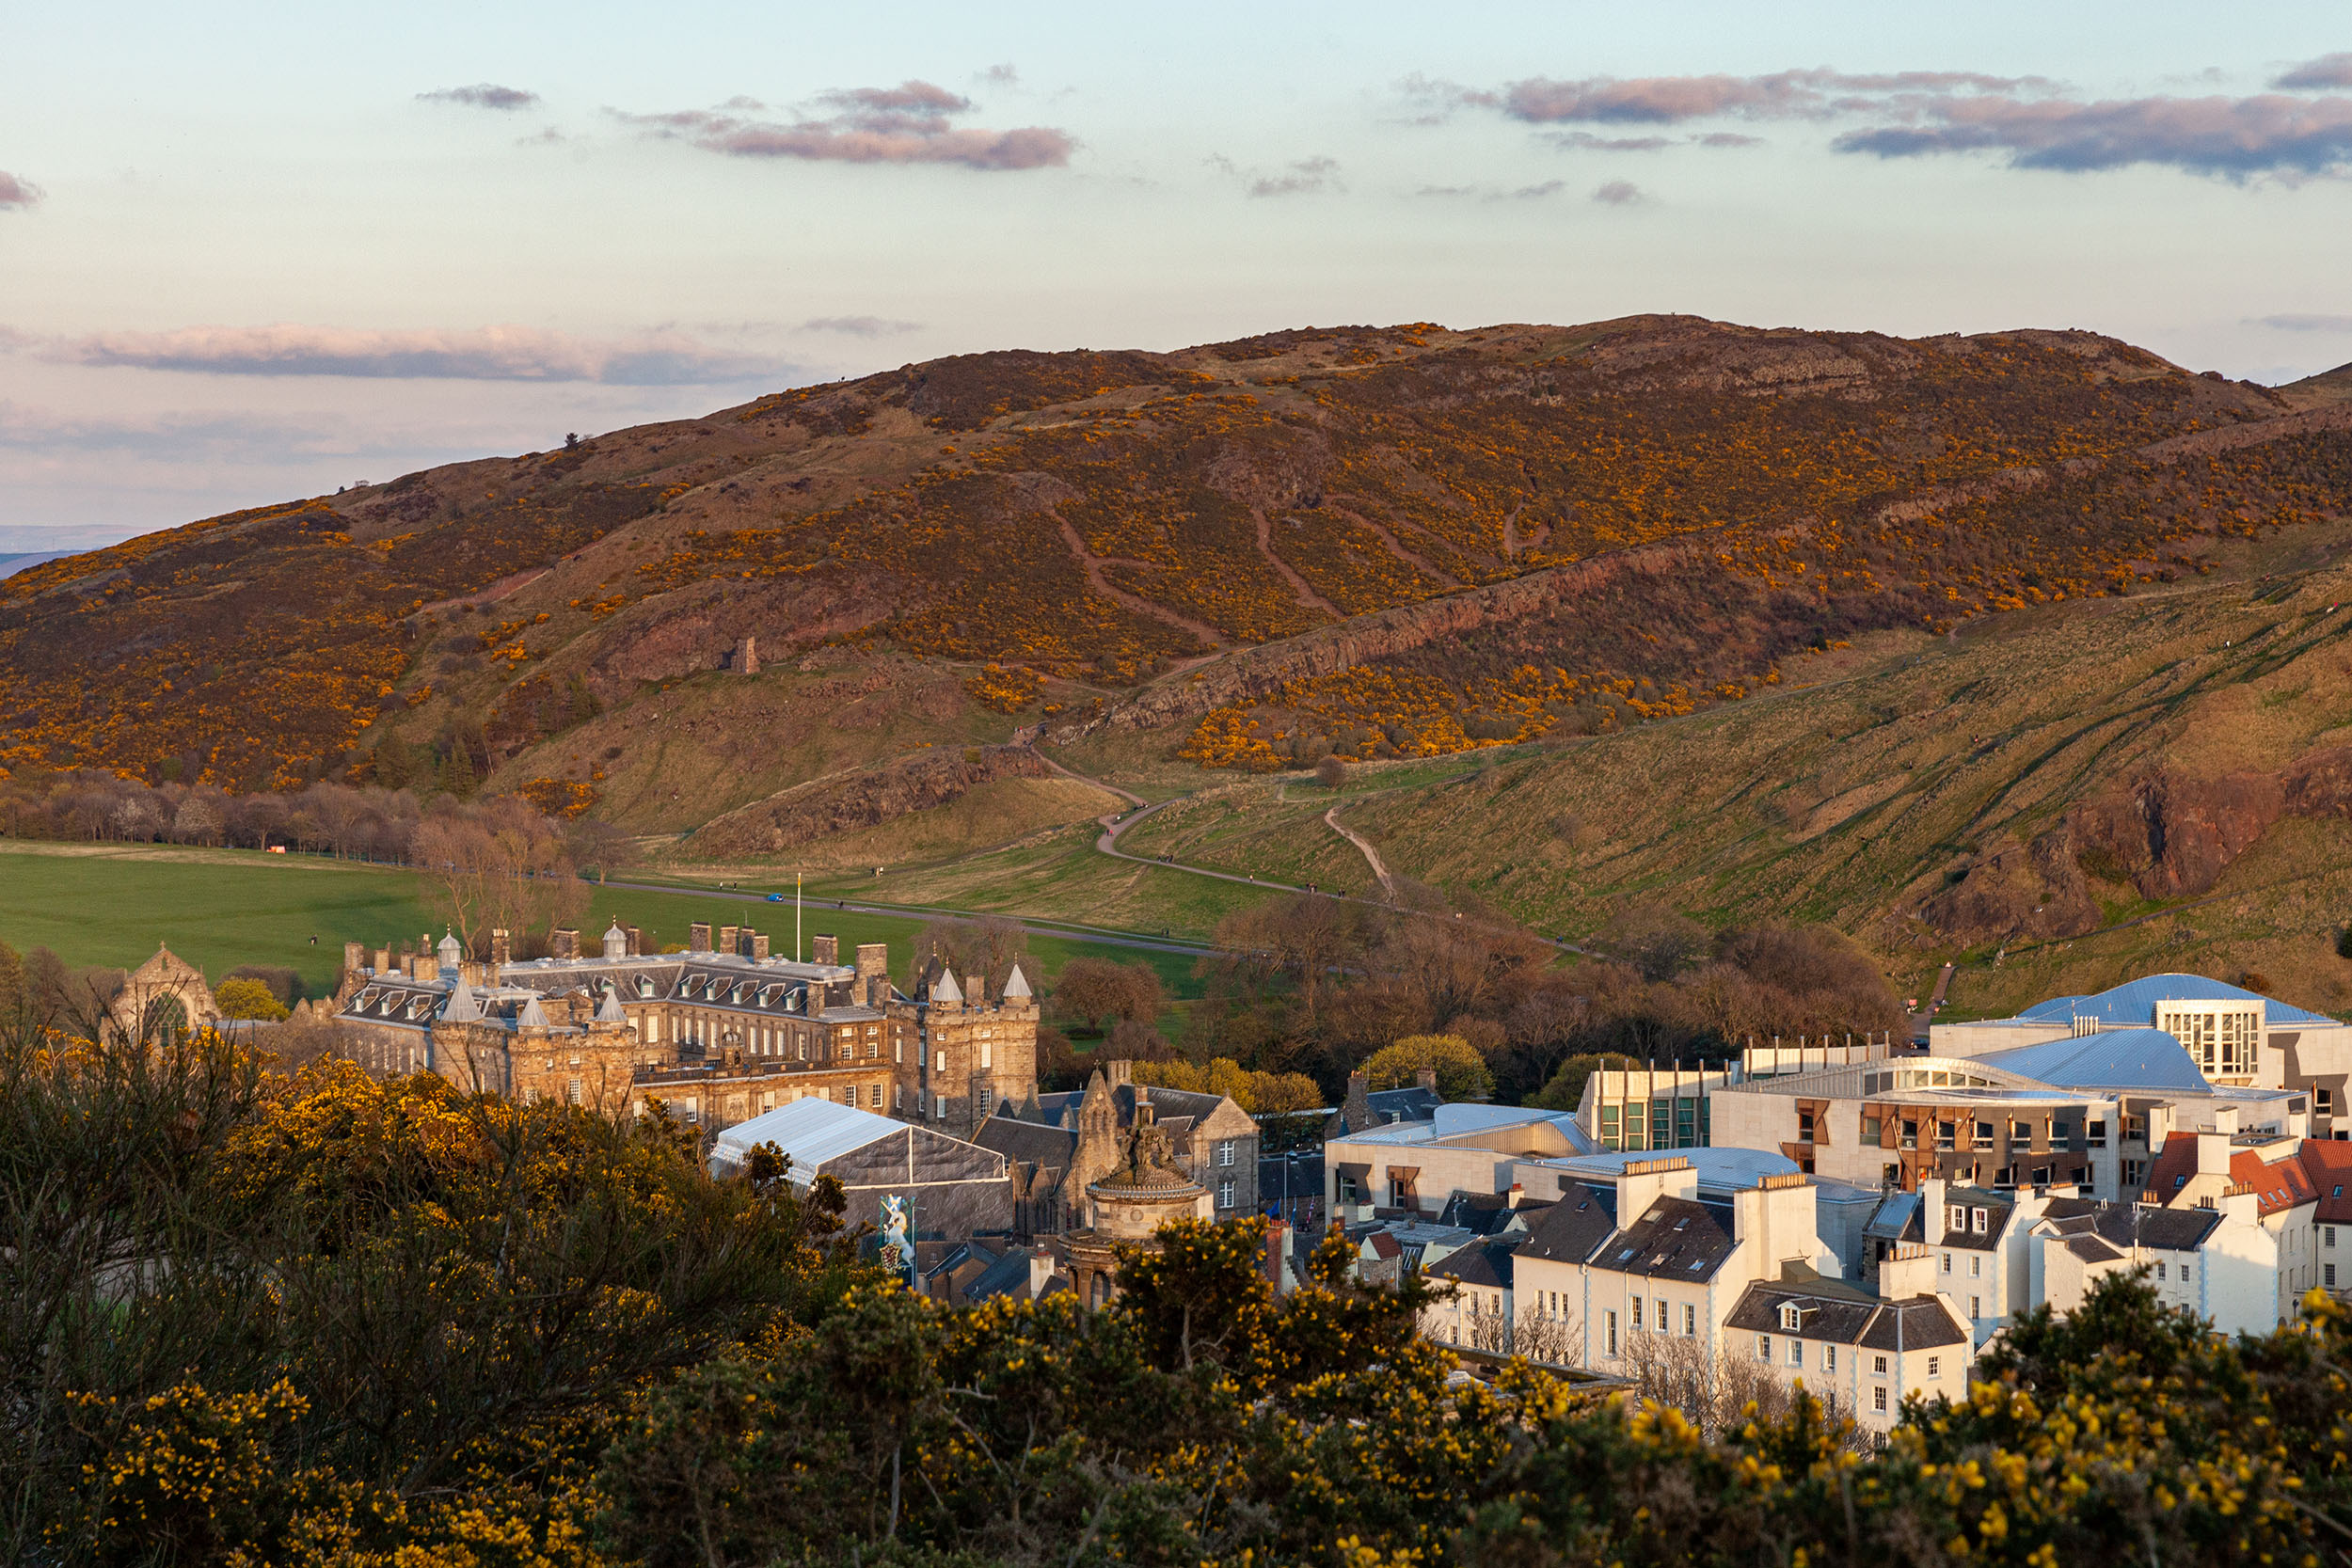 Trying to get a peek at the Palace of Holyroodhouse from Calton Hill